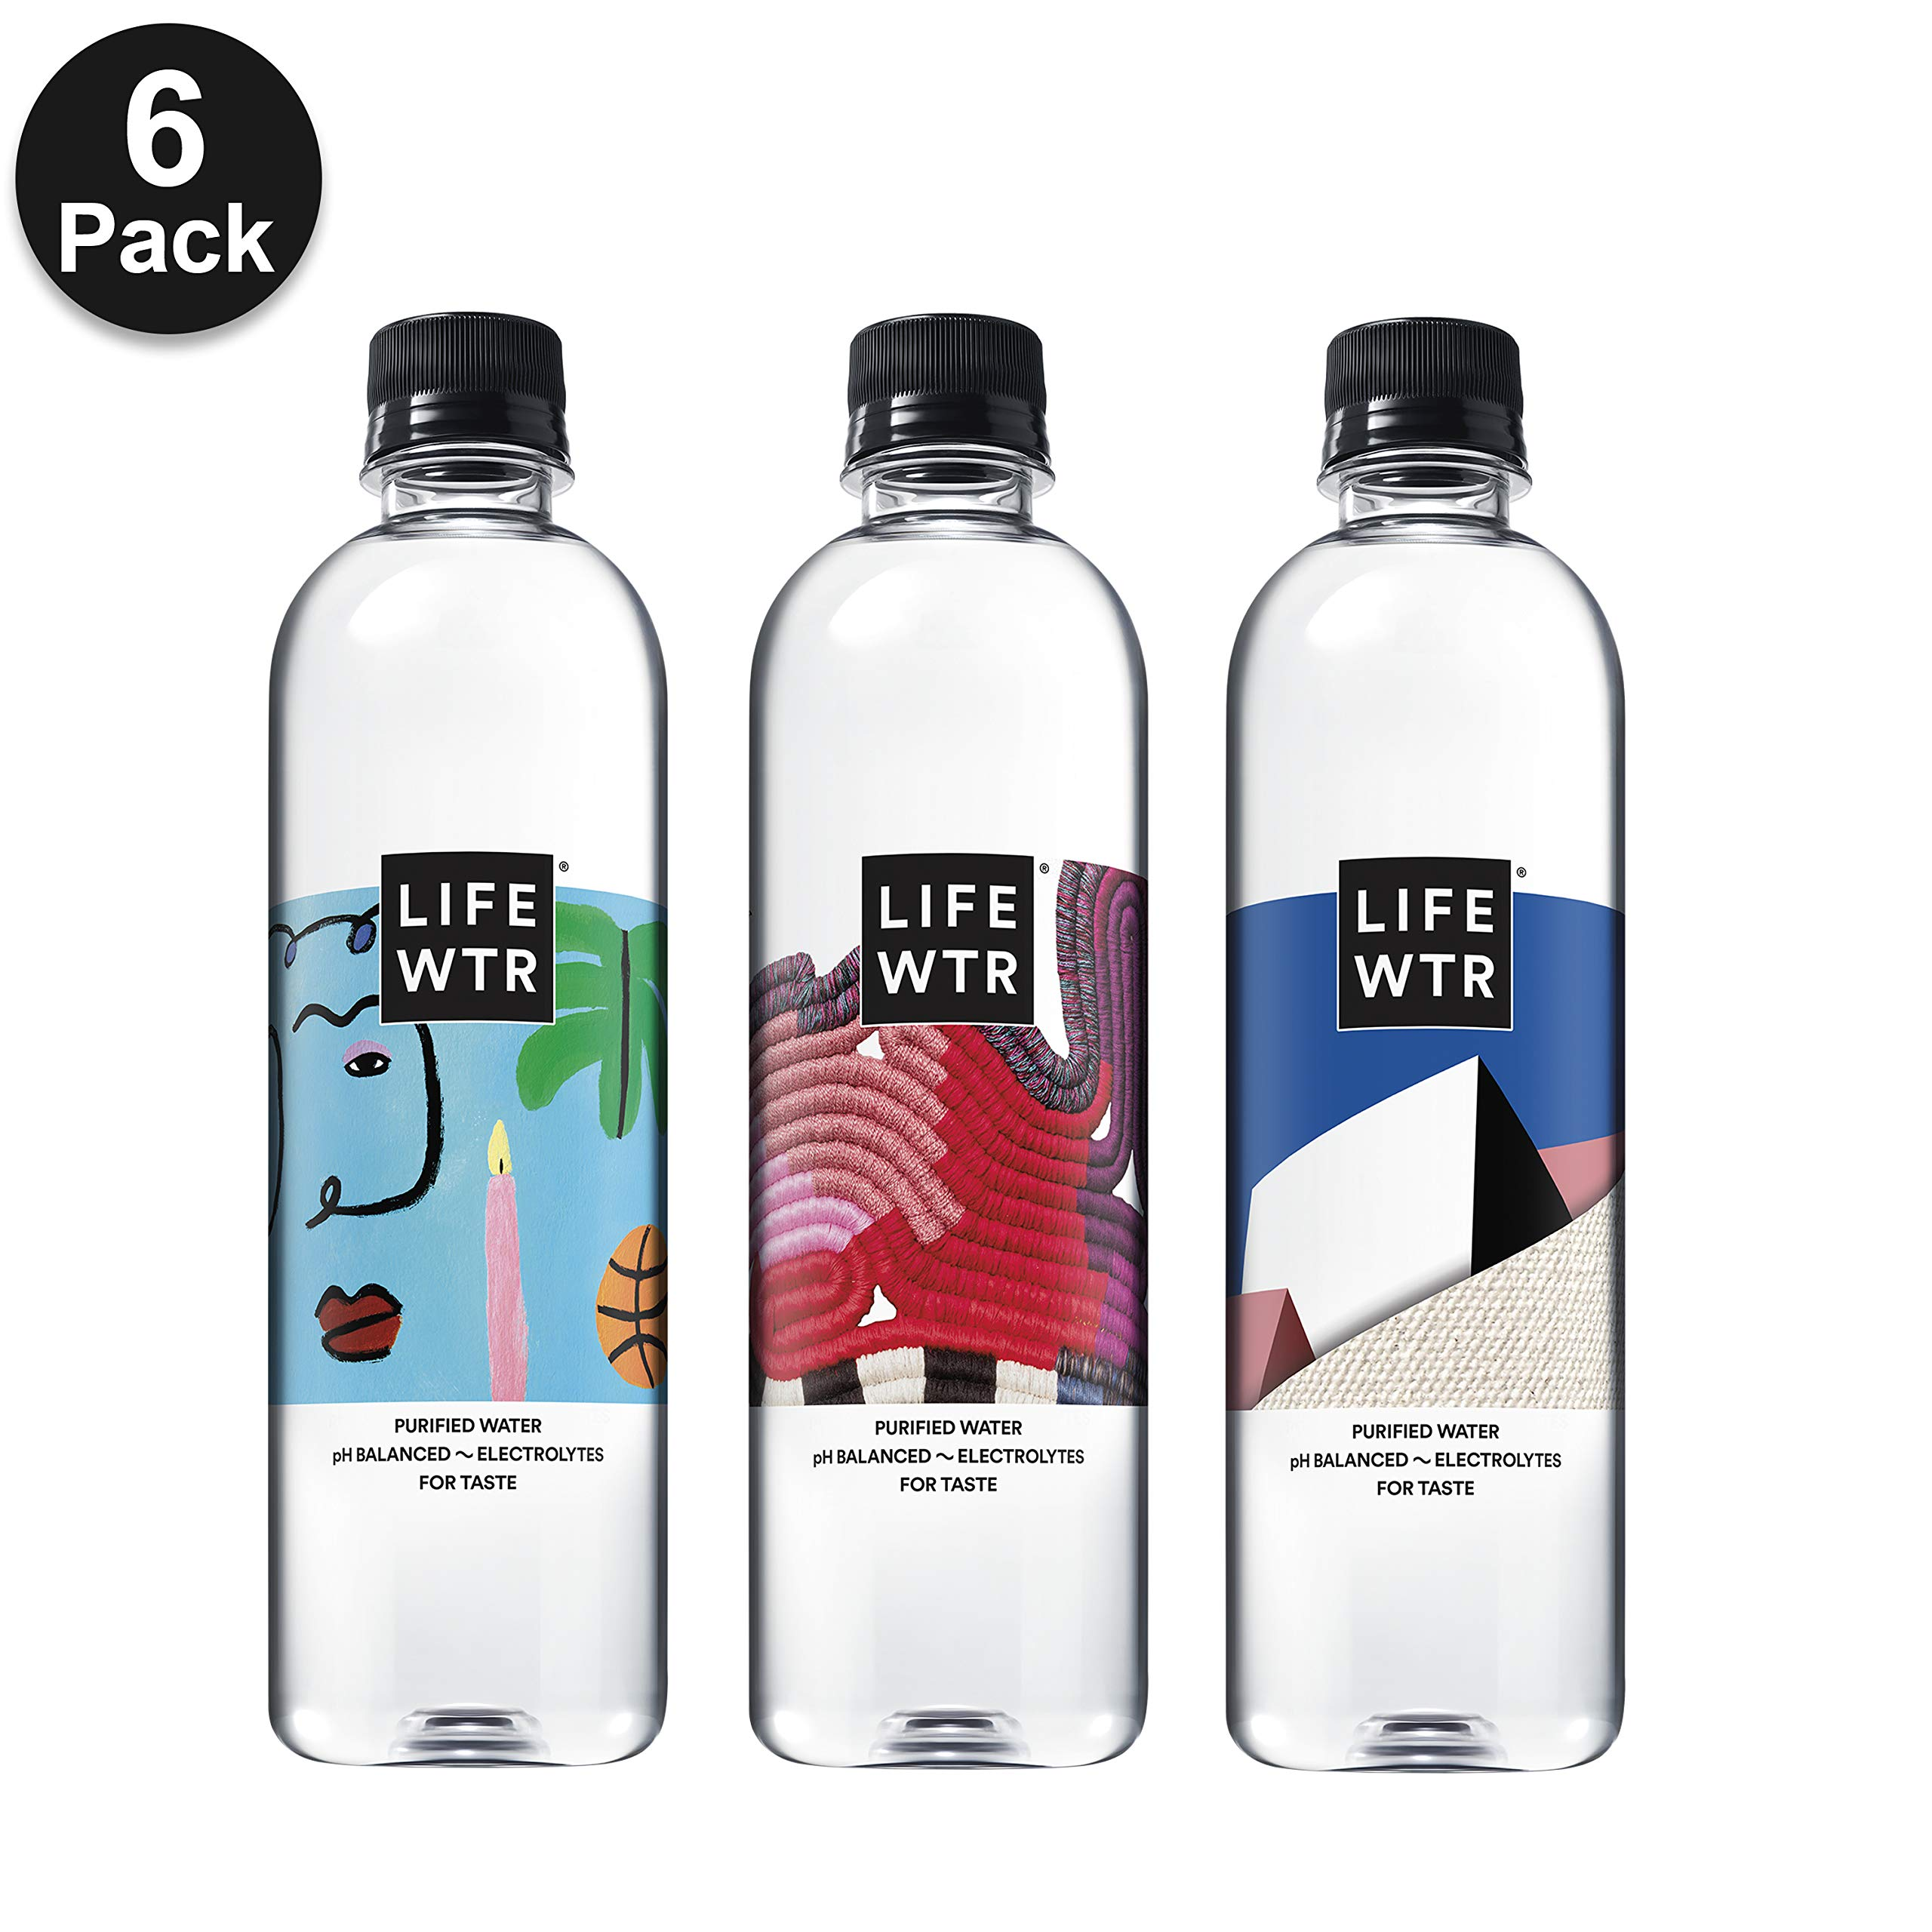 LIFEWTR, Premium Purified Water, pH Balanced with Electrolytes For Taste, 500 mL bottles (Pack of 6) (Packaging May Vary) by LIFEWTR